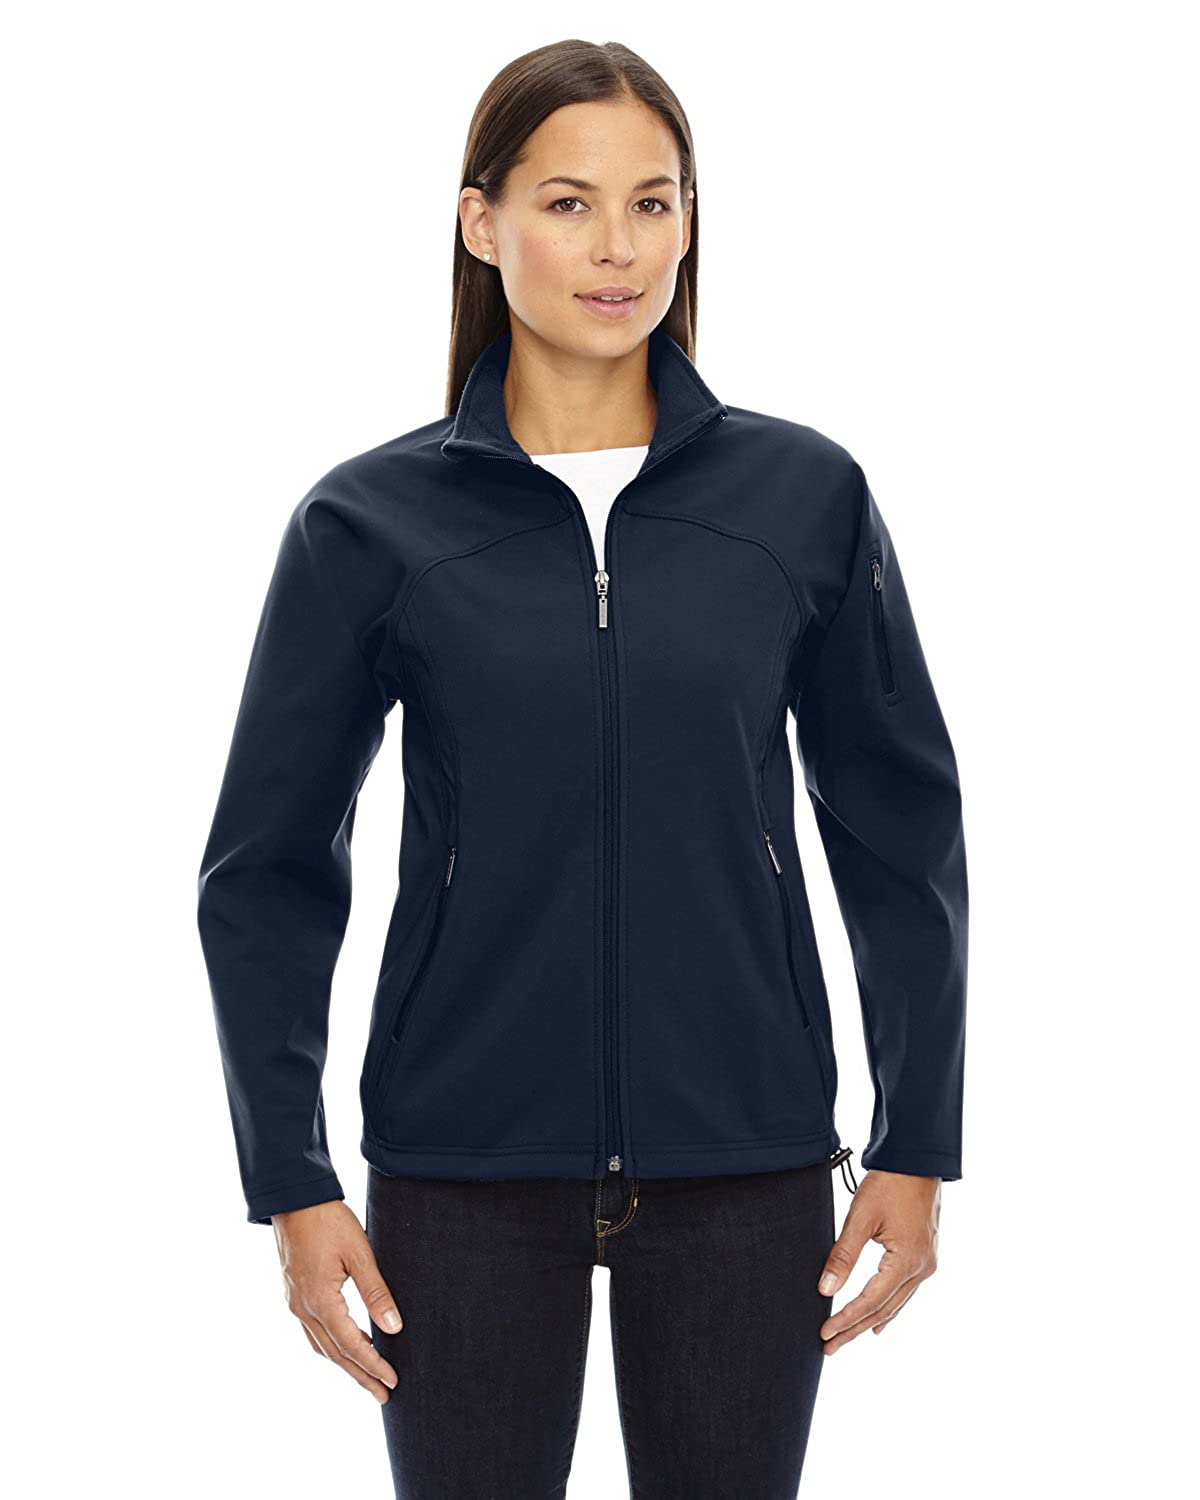 Midn Navy 711 3XL Ash CityNorth End 78034 Ladies' Three-Layer Fleece Bonded Performance Soft Shell Jacket